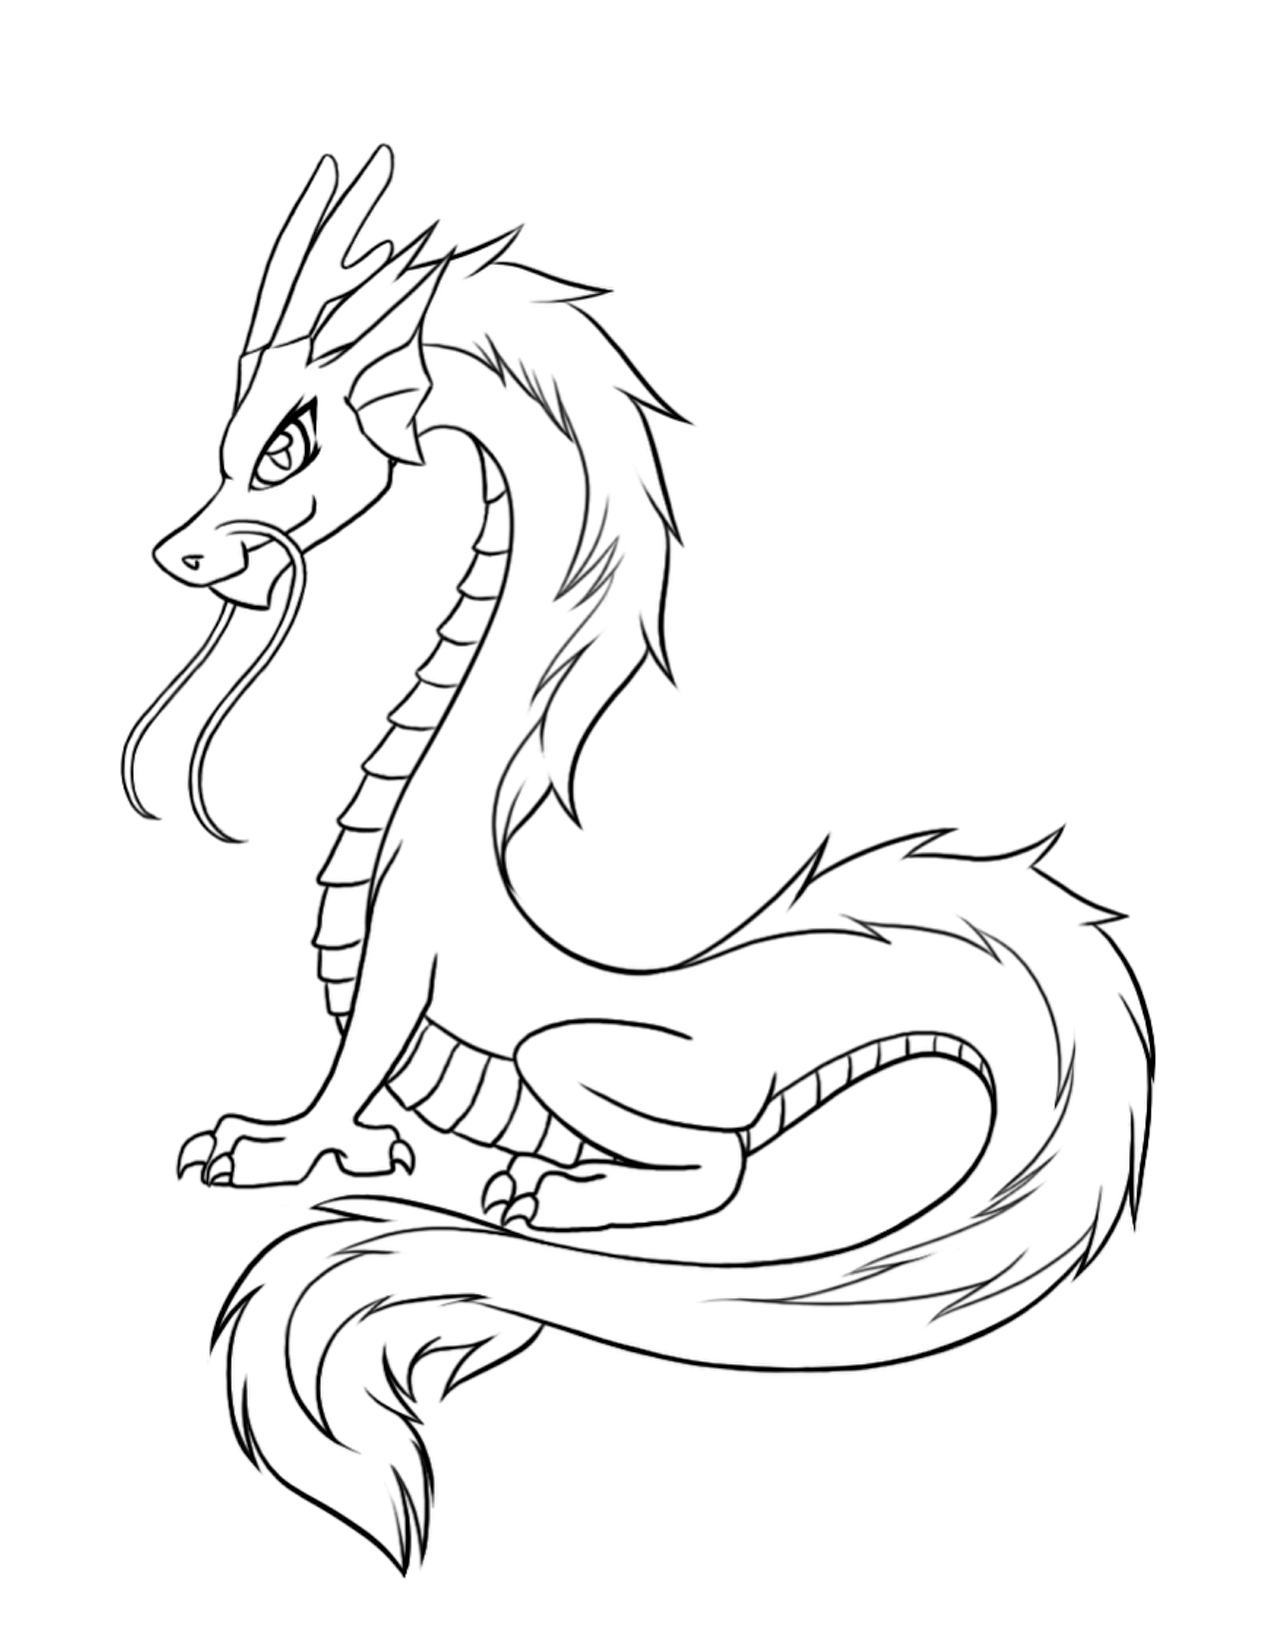 realistic dragon coloring pages realistic dragon coloring pages for adults coloring home realistic dragon coloring pages